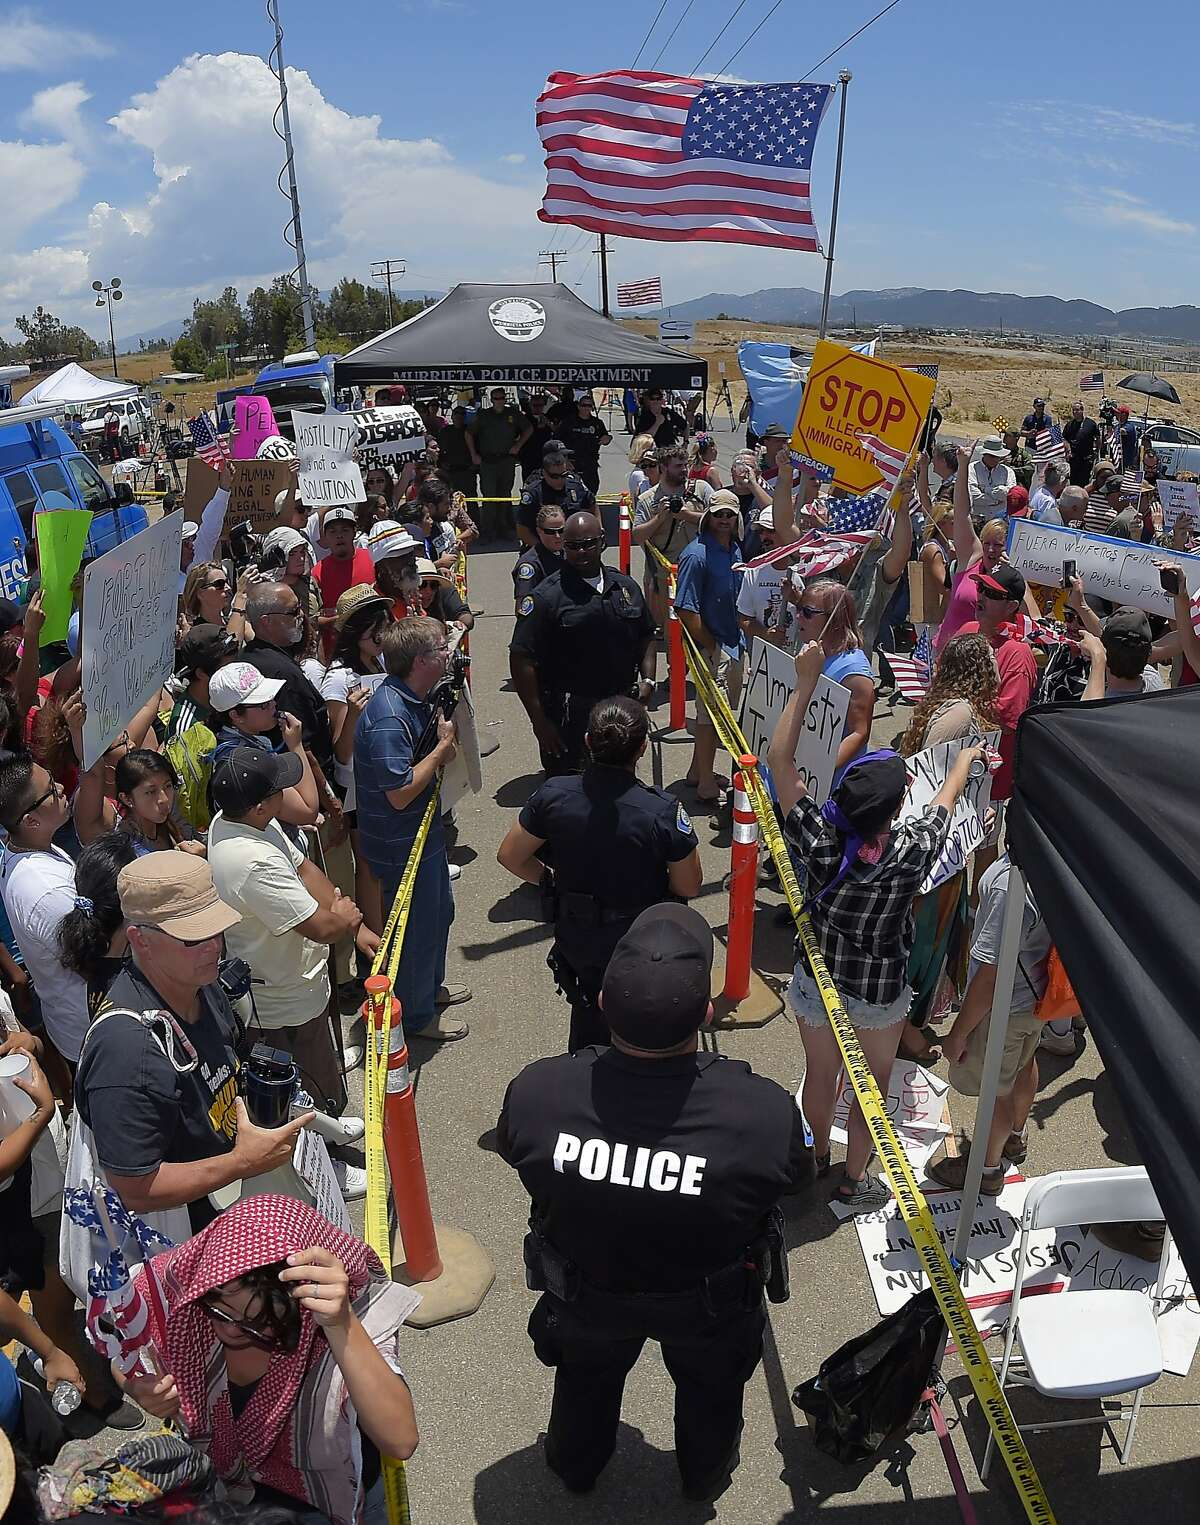 Demonstrators from opposing sides confront each other while being separated by Murrieta police officers, Friday, July 4, 2014, outside a U.S. Border Patrol station in Murrieta, Calif. Demonstrators on both sides of the immigration debate had gathered where the agency was foiled earlier this week in an attempt to bus in and process some of the immigrants who have flooded the Texas border with Mexico. (AP Photo/Mark J. Terrill)